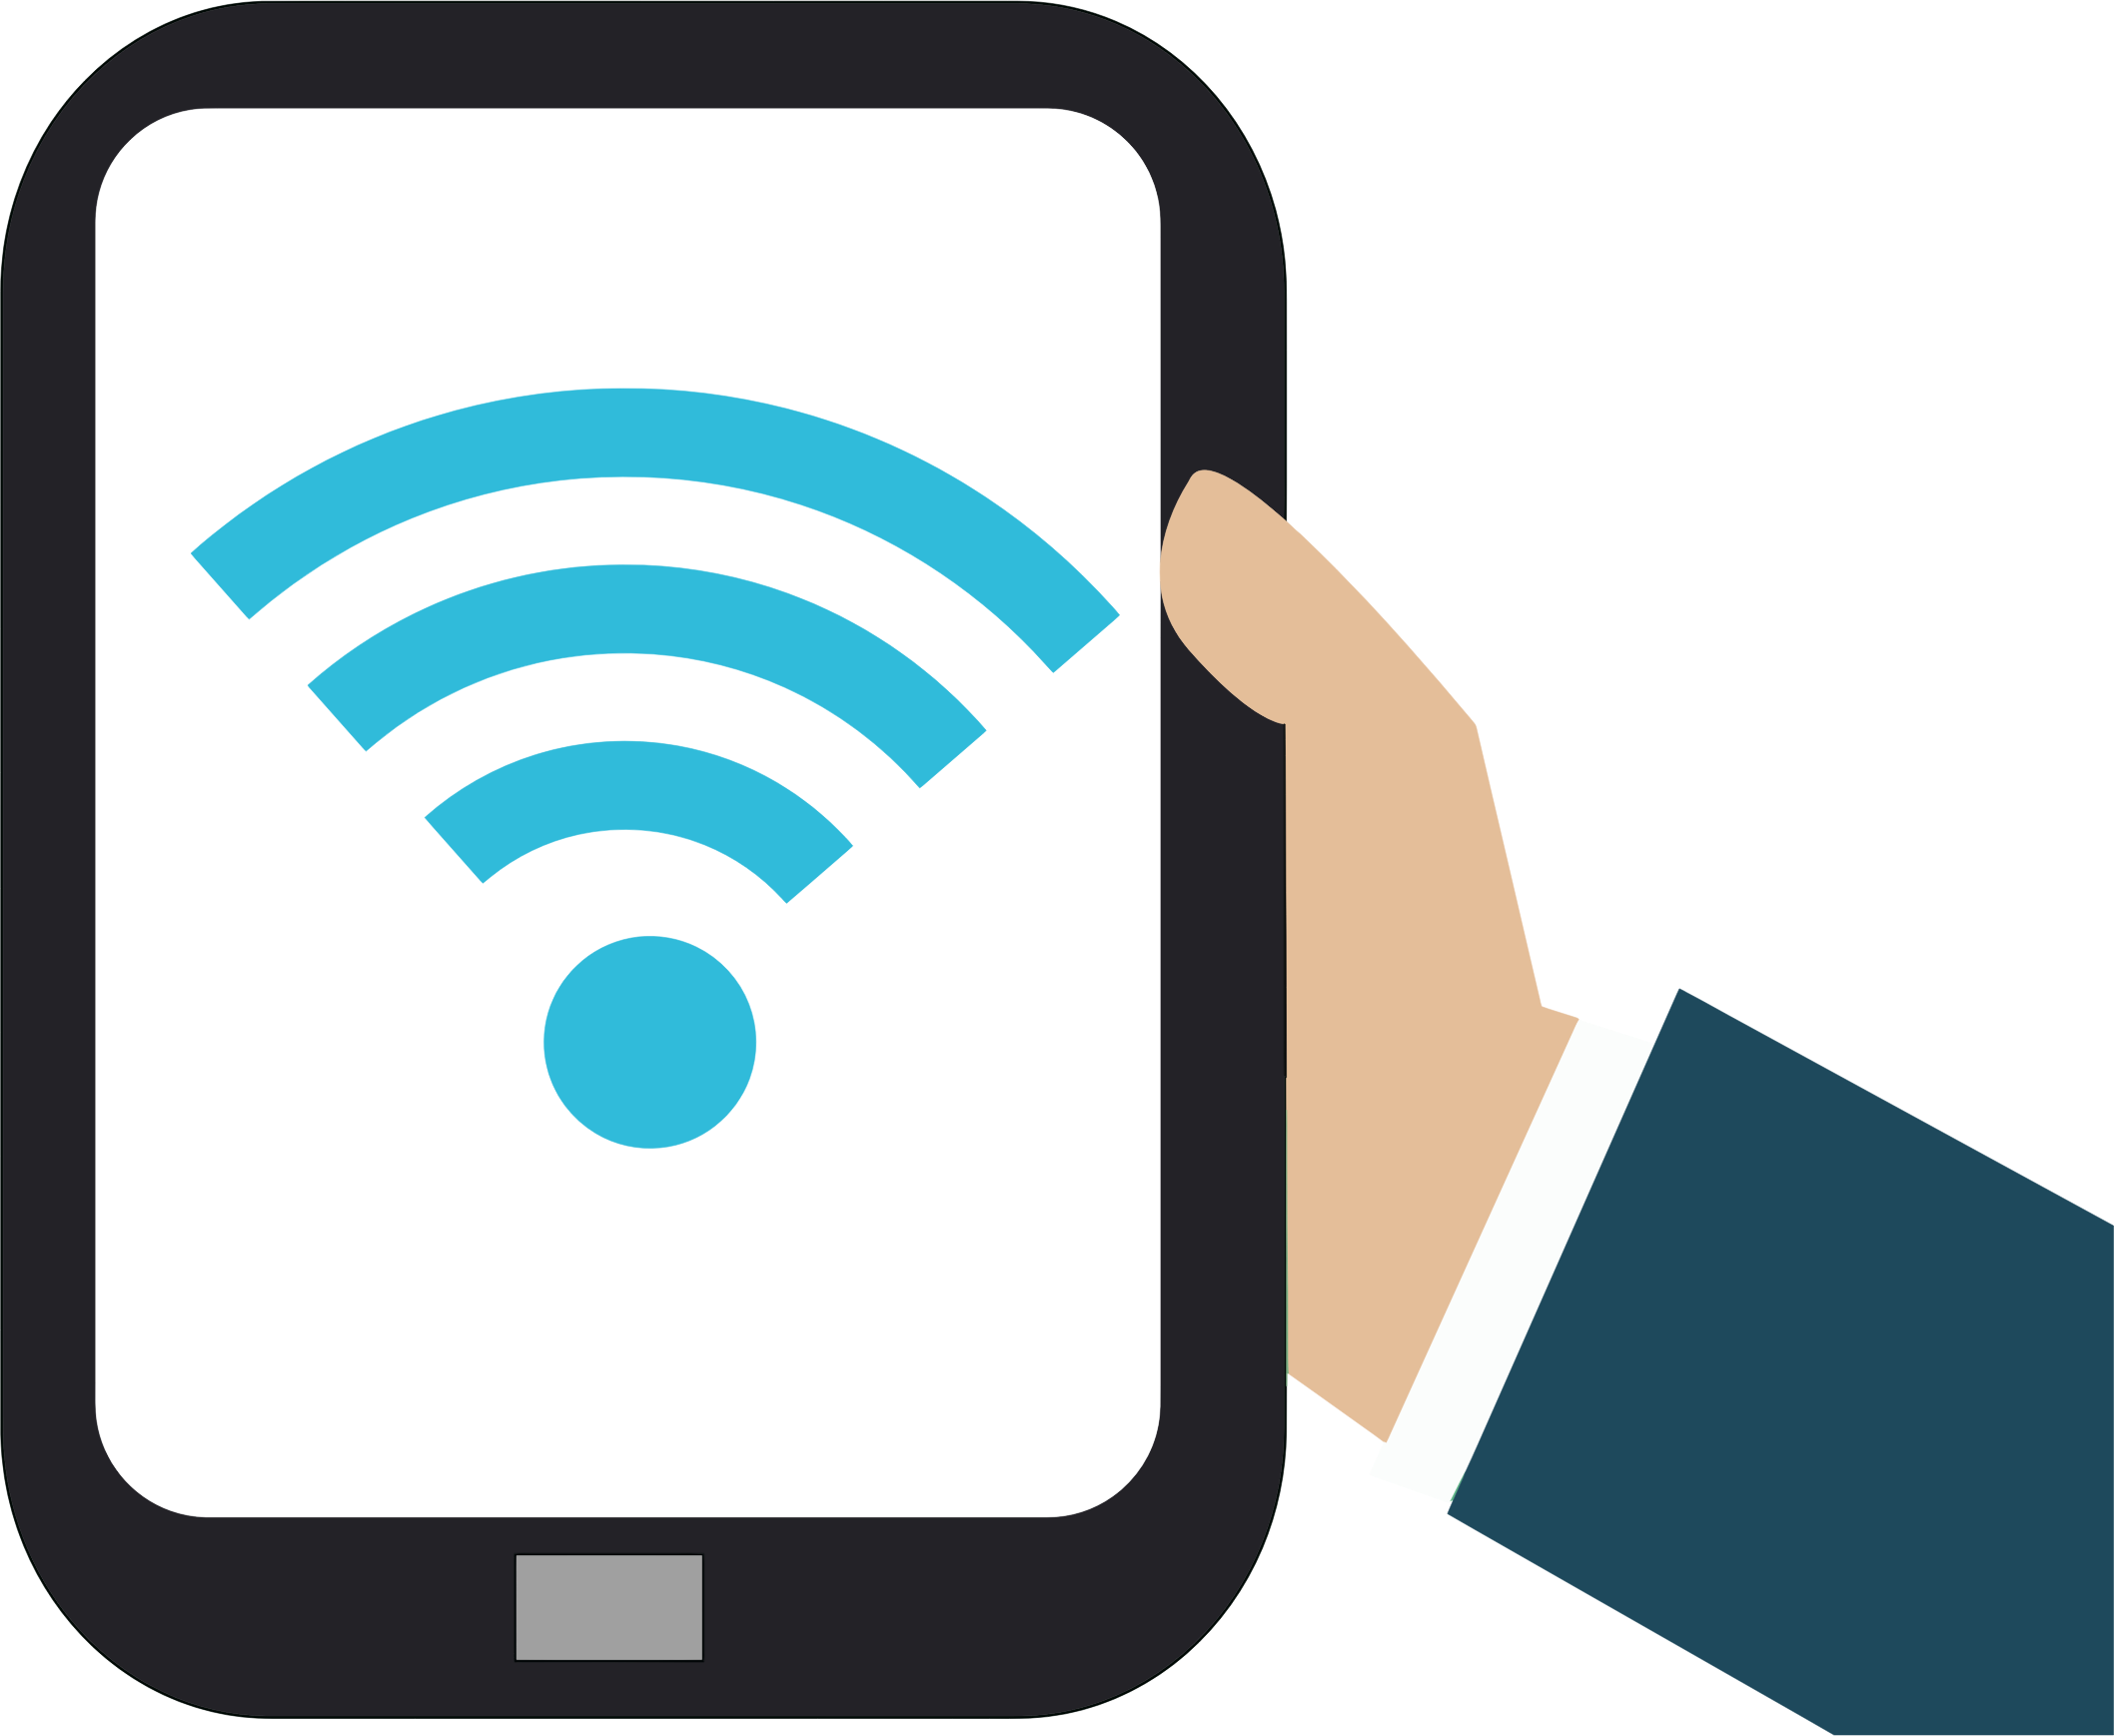 Electronics clipart internet symbol. Tablet wifi no background